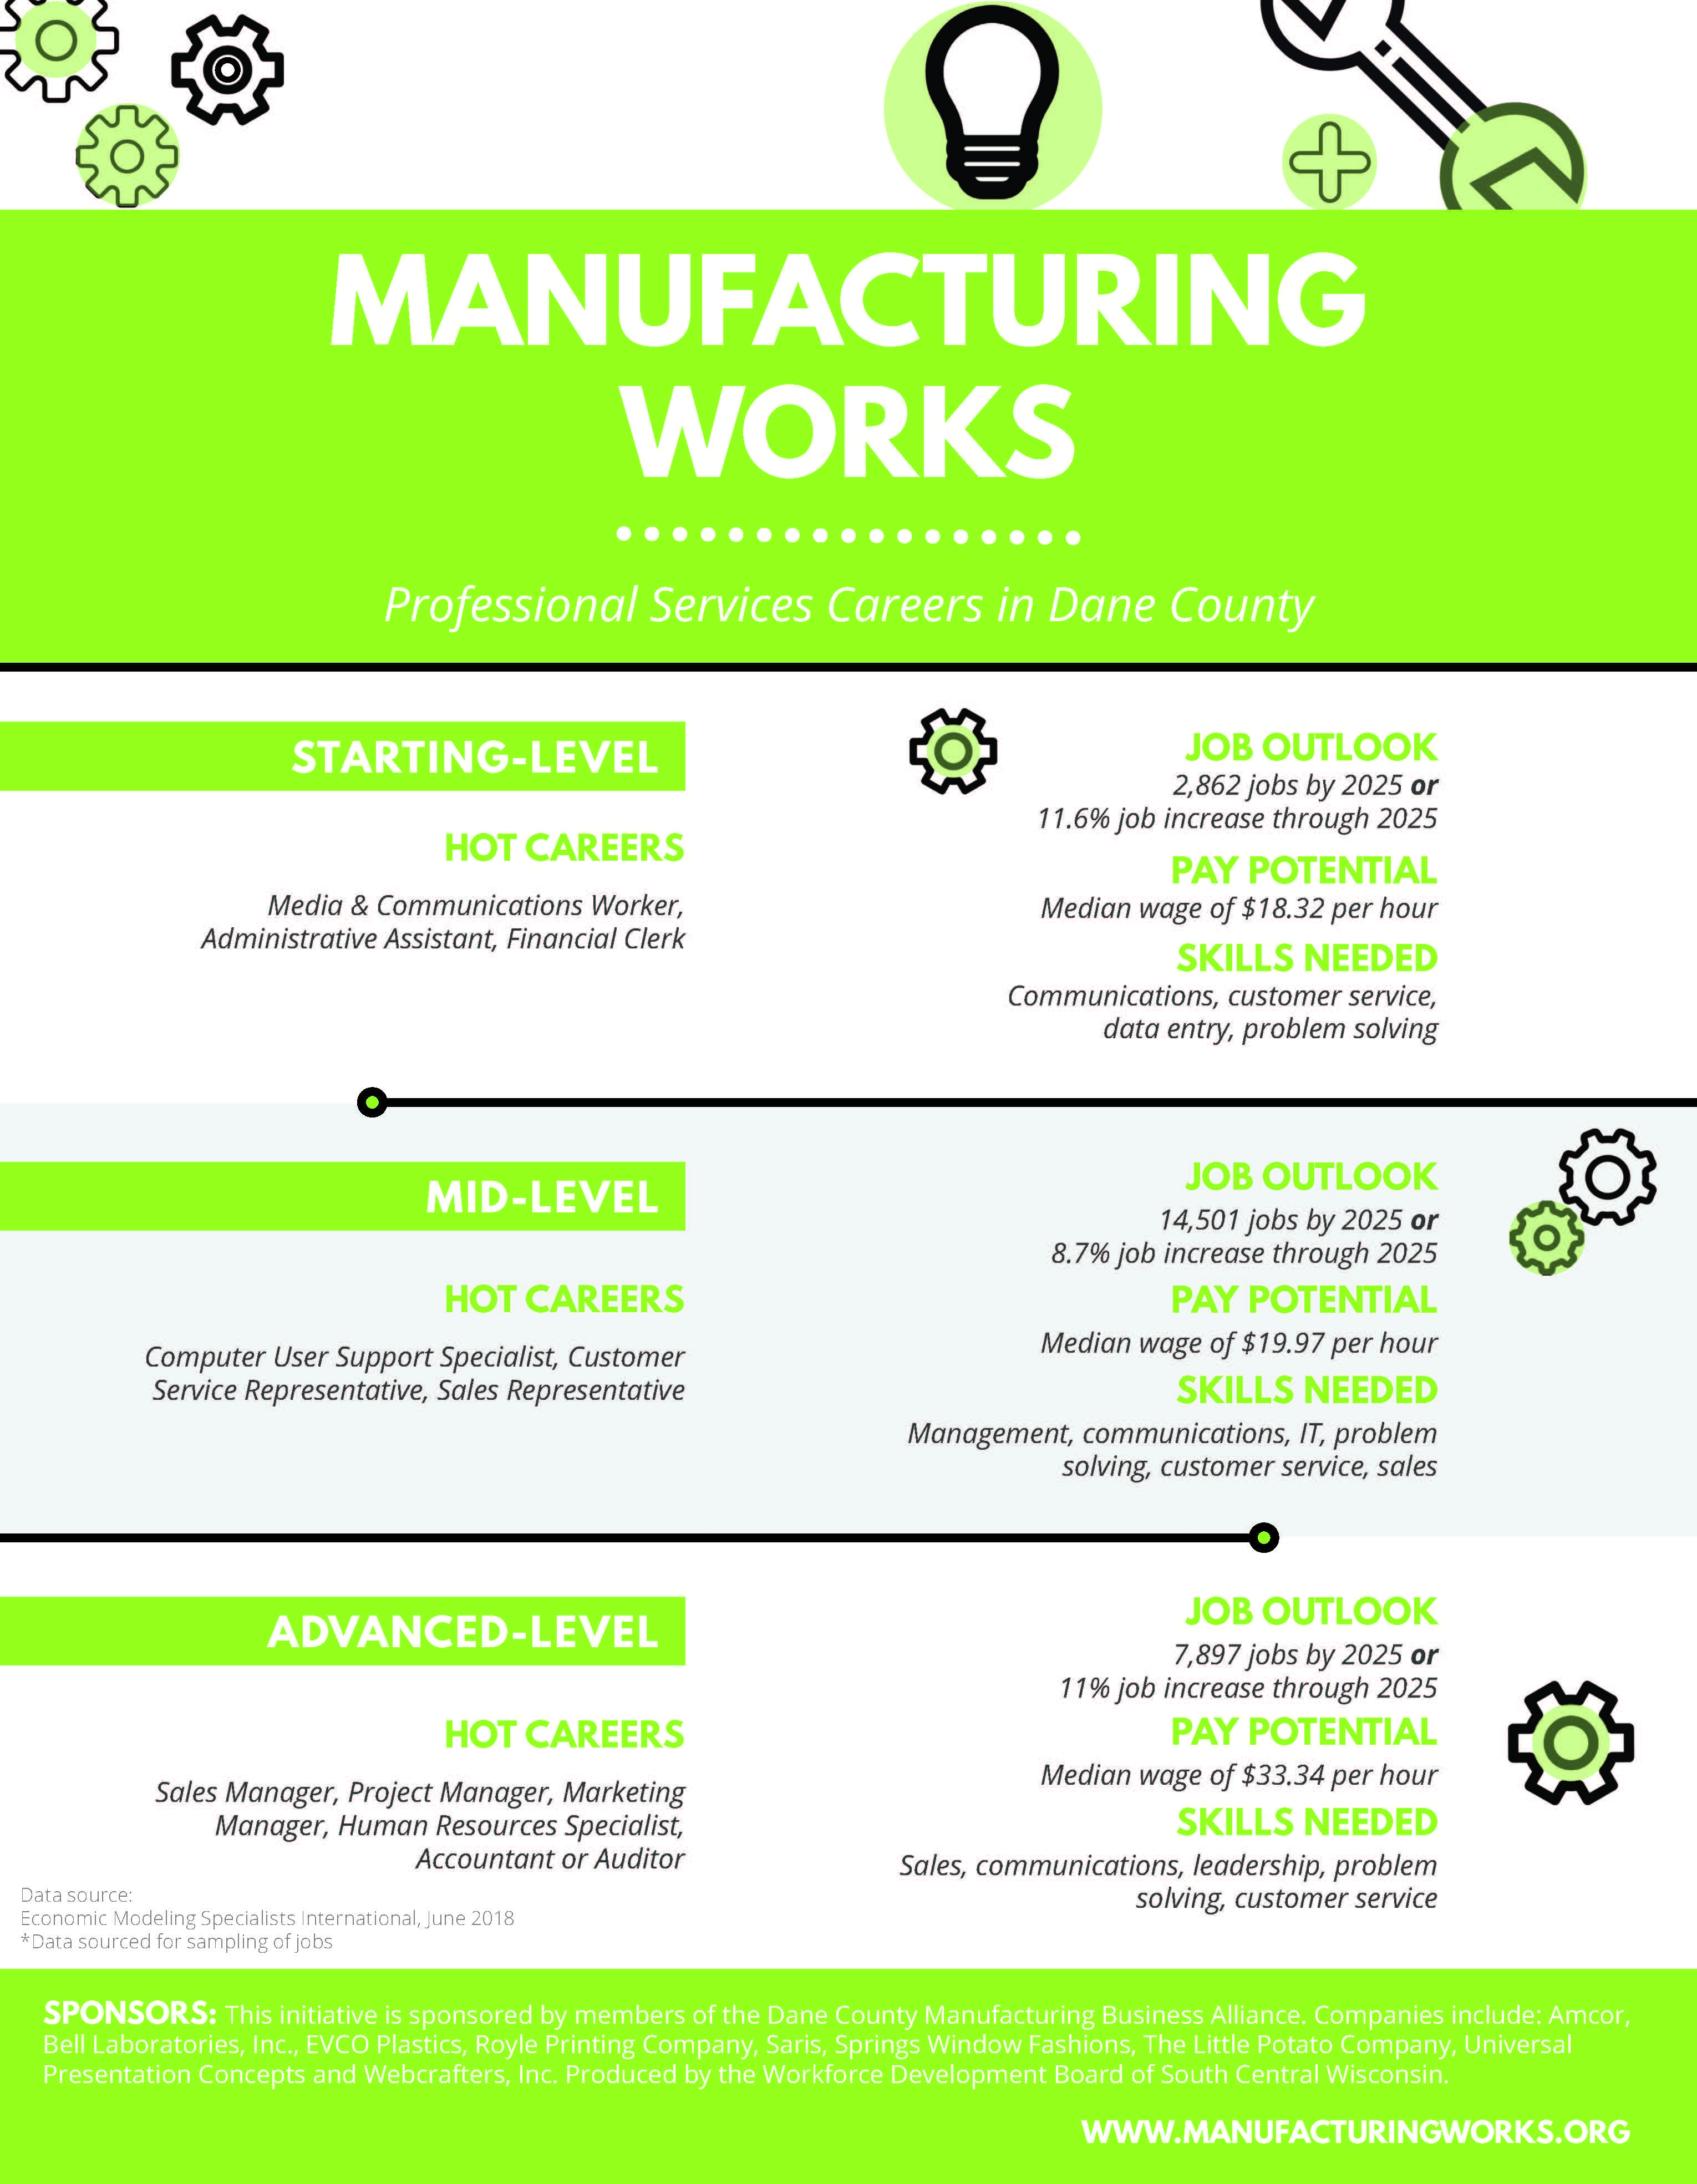 Manufacturing Works poster for Dane County featuring professional jobs